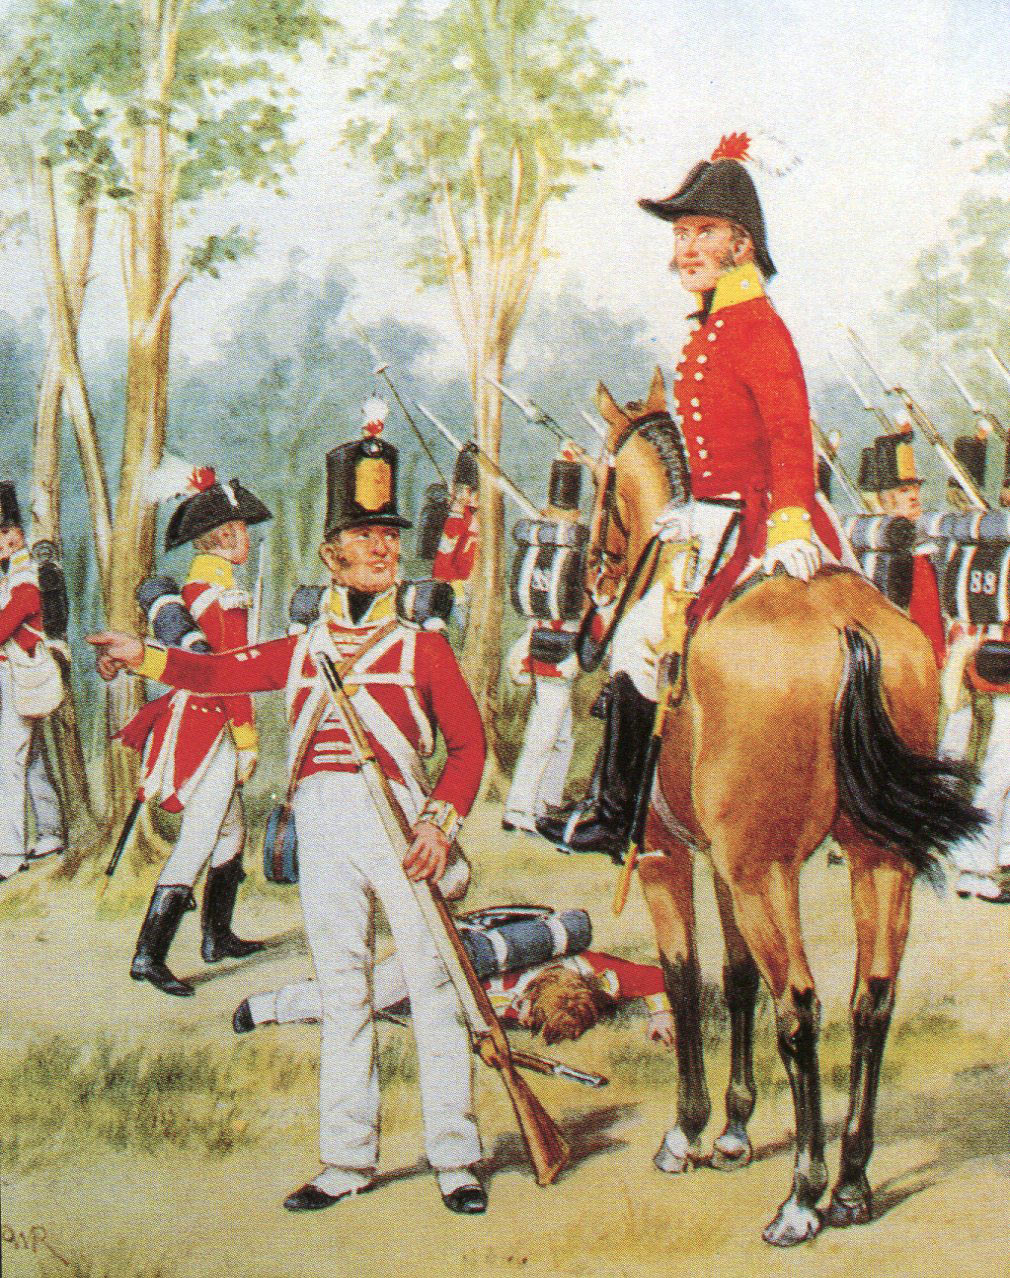 Colonel Wallace and the 88th Regiment at the Battle of Busaco on 27th September 1810 in the Peninsular War